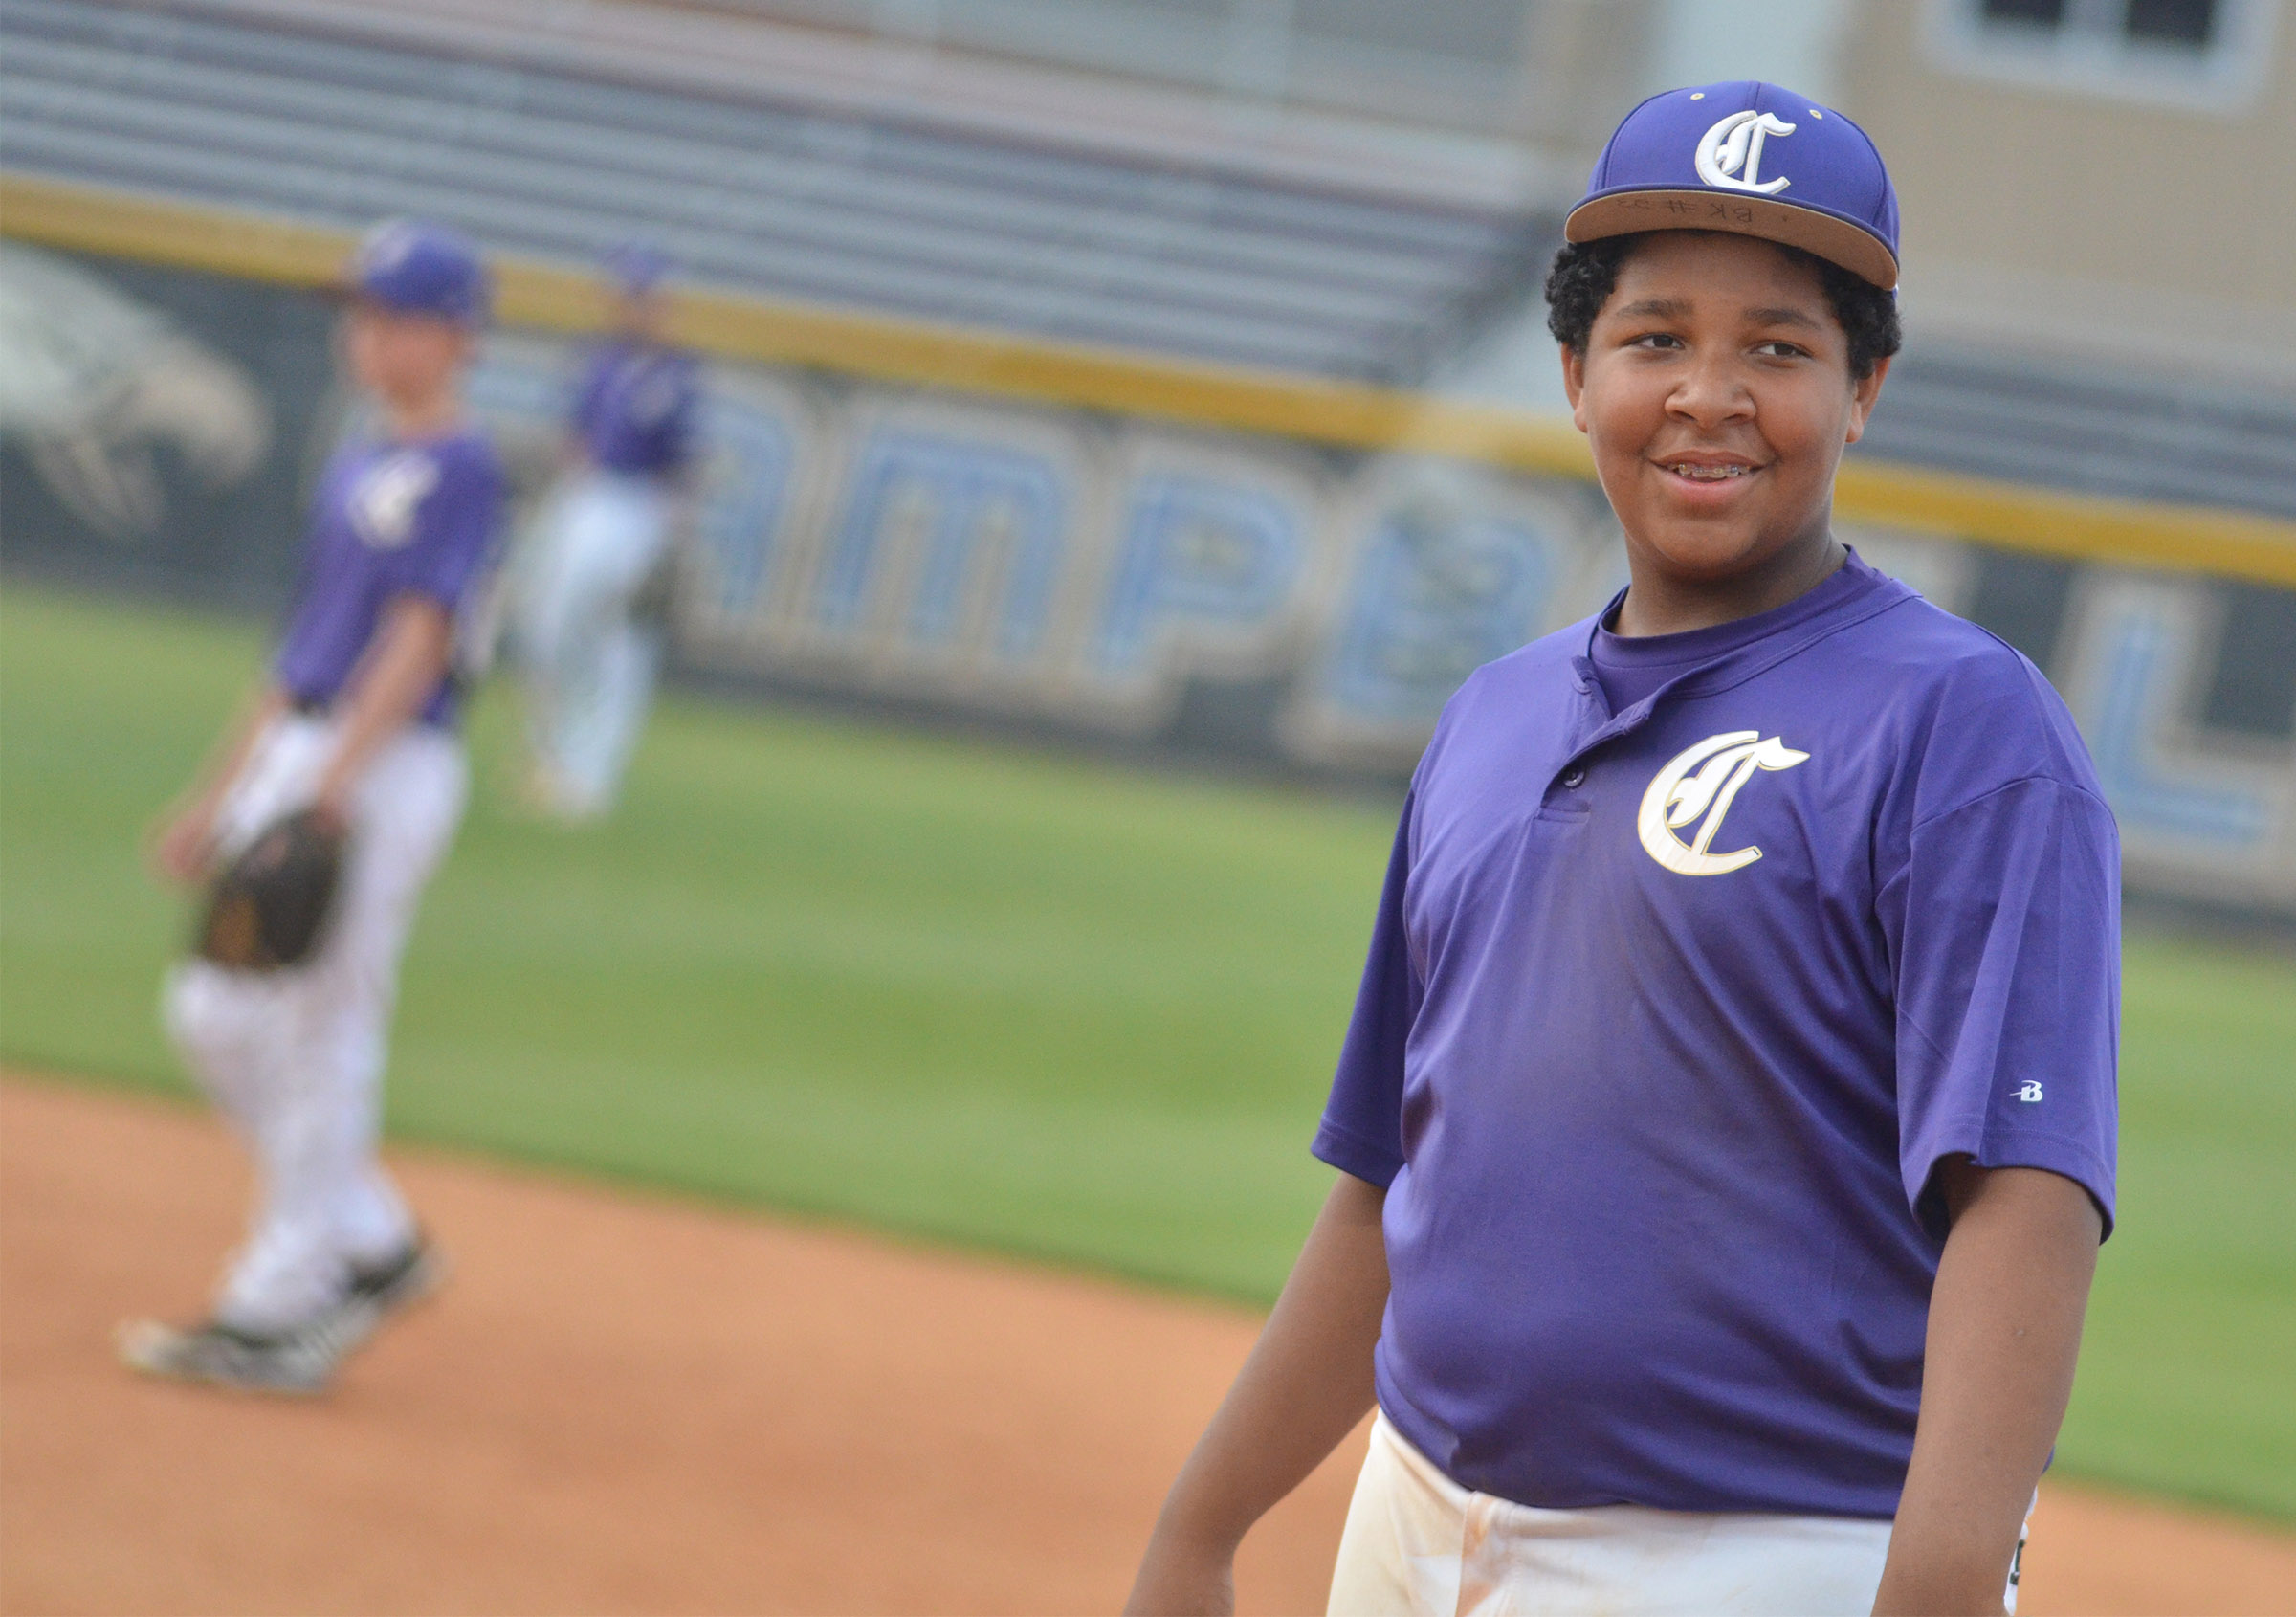 CMS seventh-grader Bryson Karr smiles as he mans first.